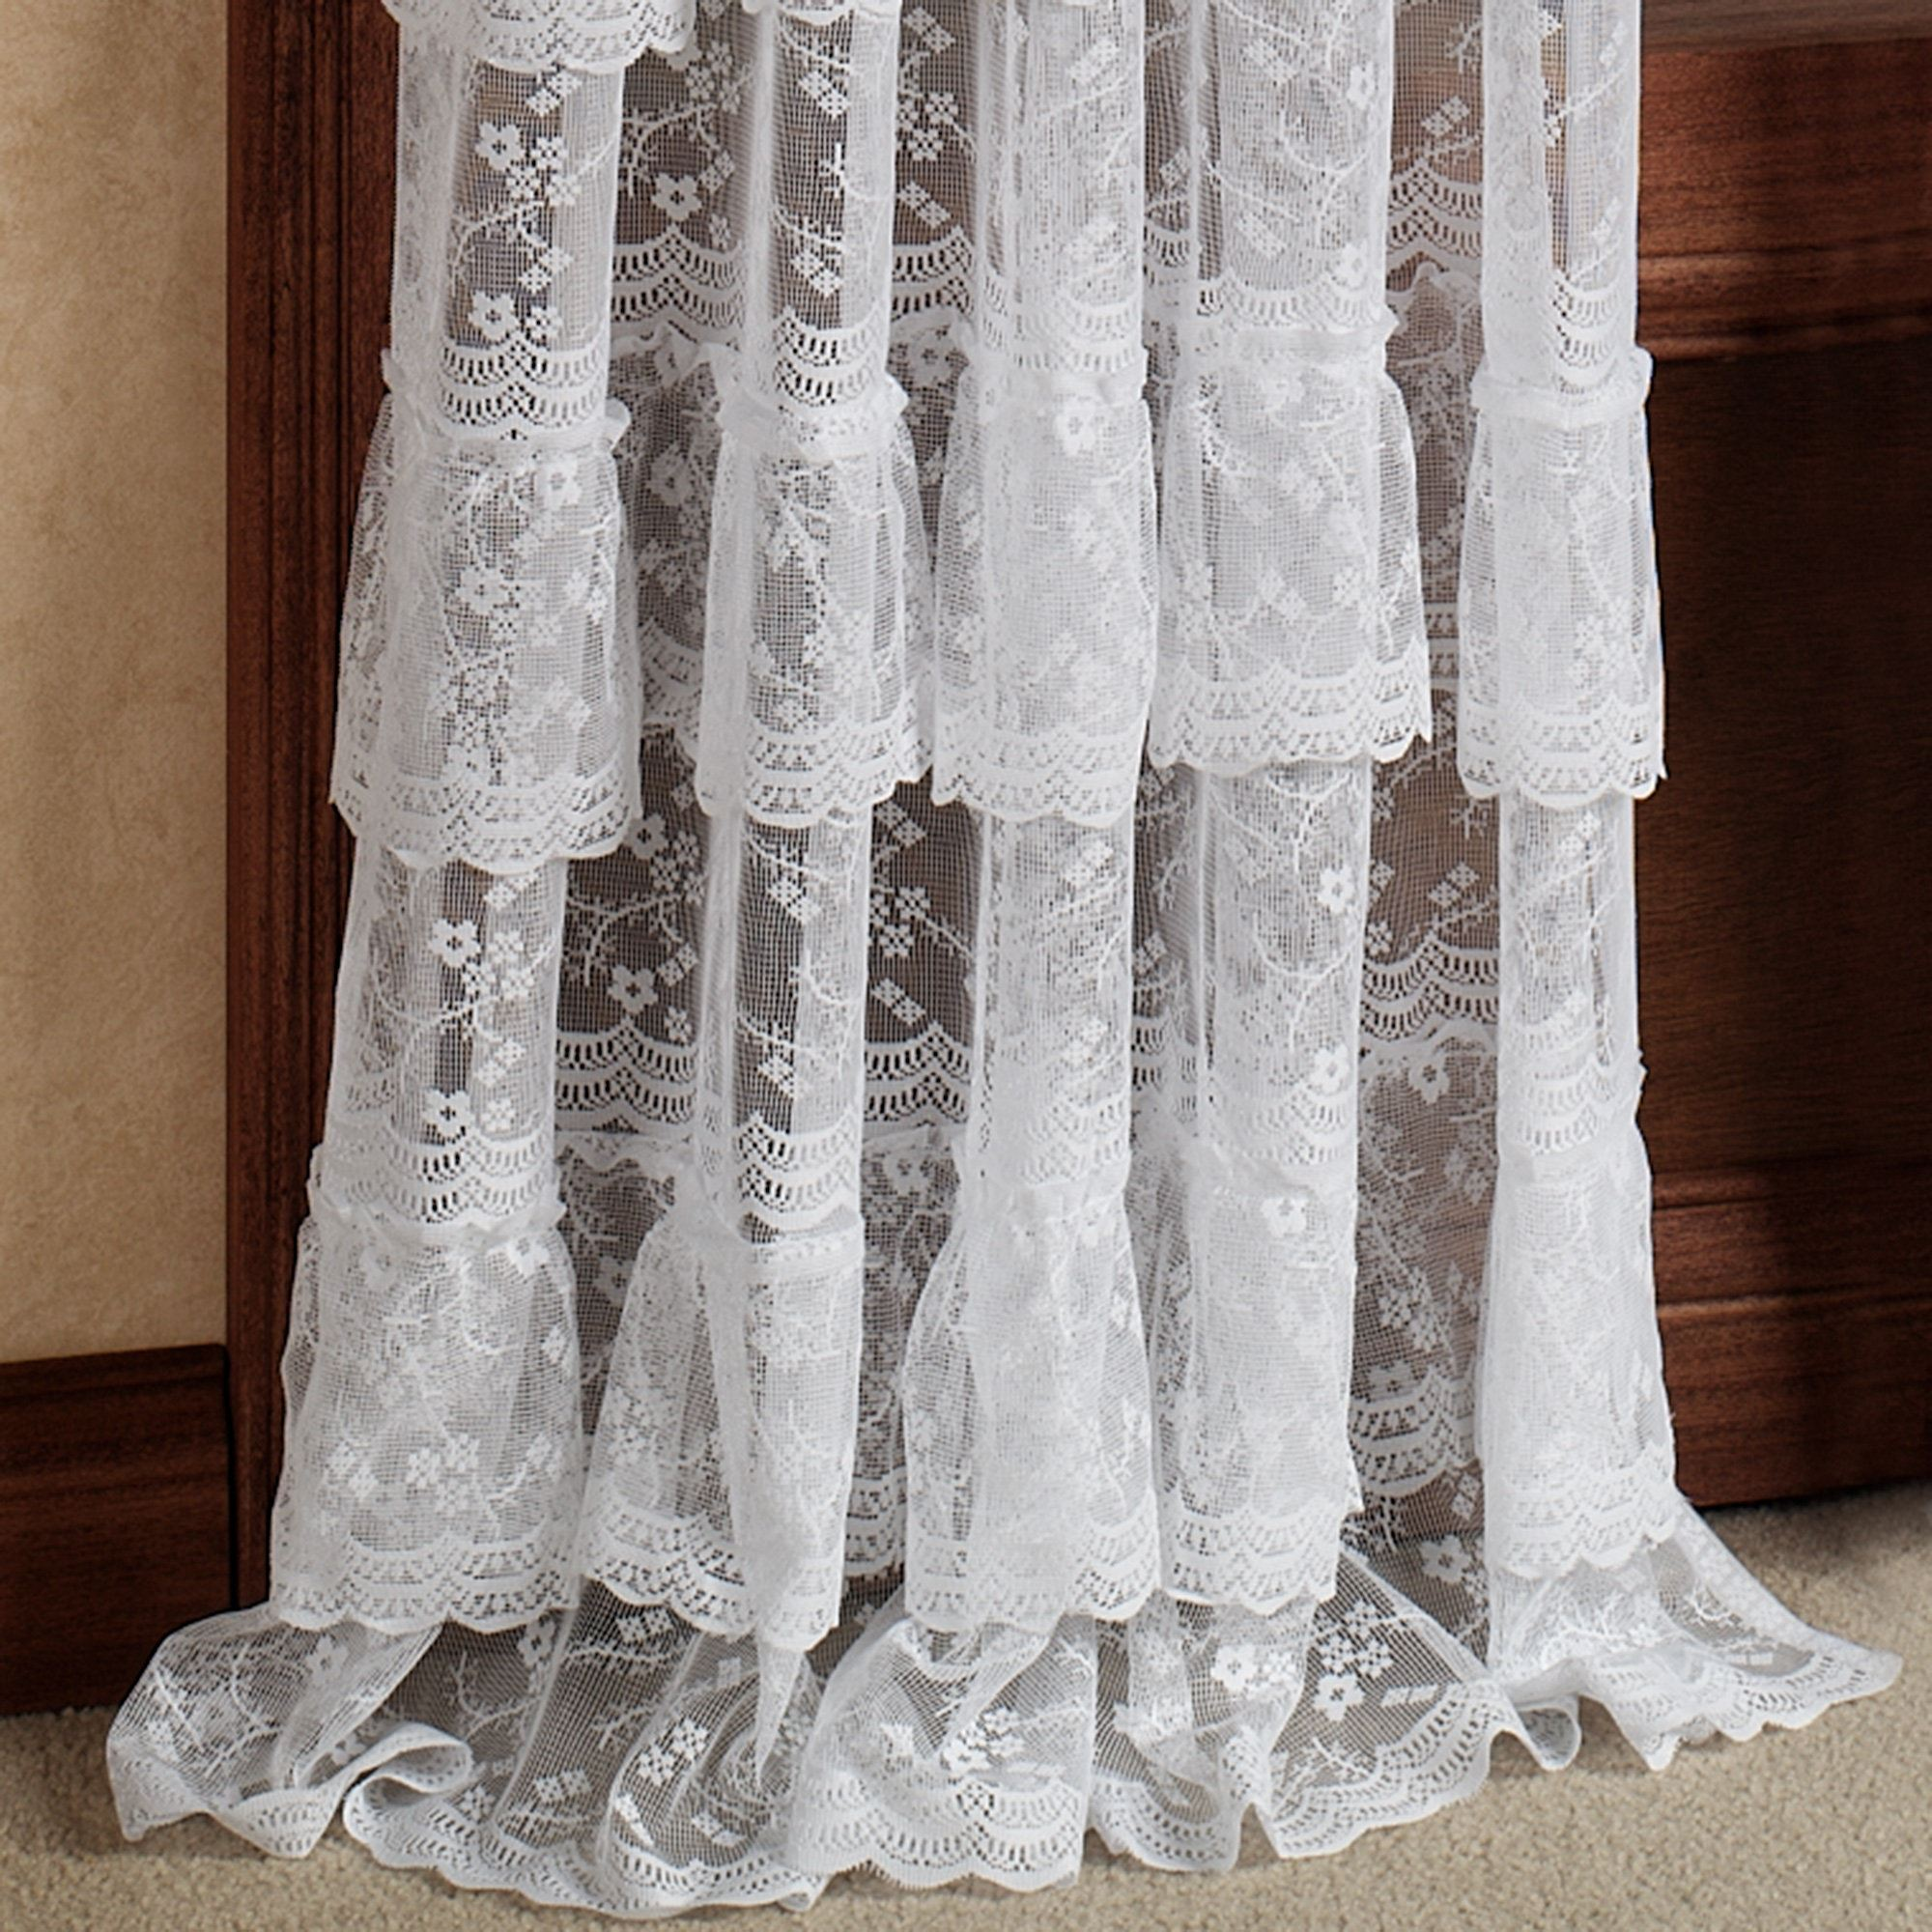 trim blackout residence ruffle your accessories curtain panel within design decorations interesting white pinterest diy curtains and